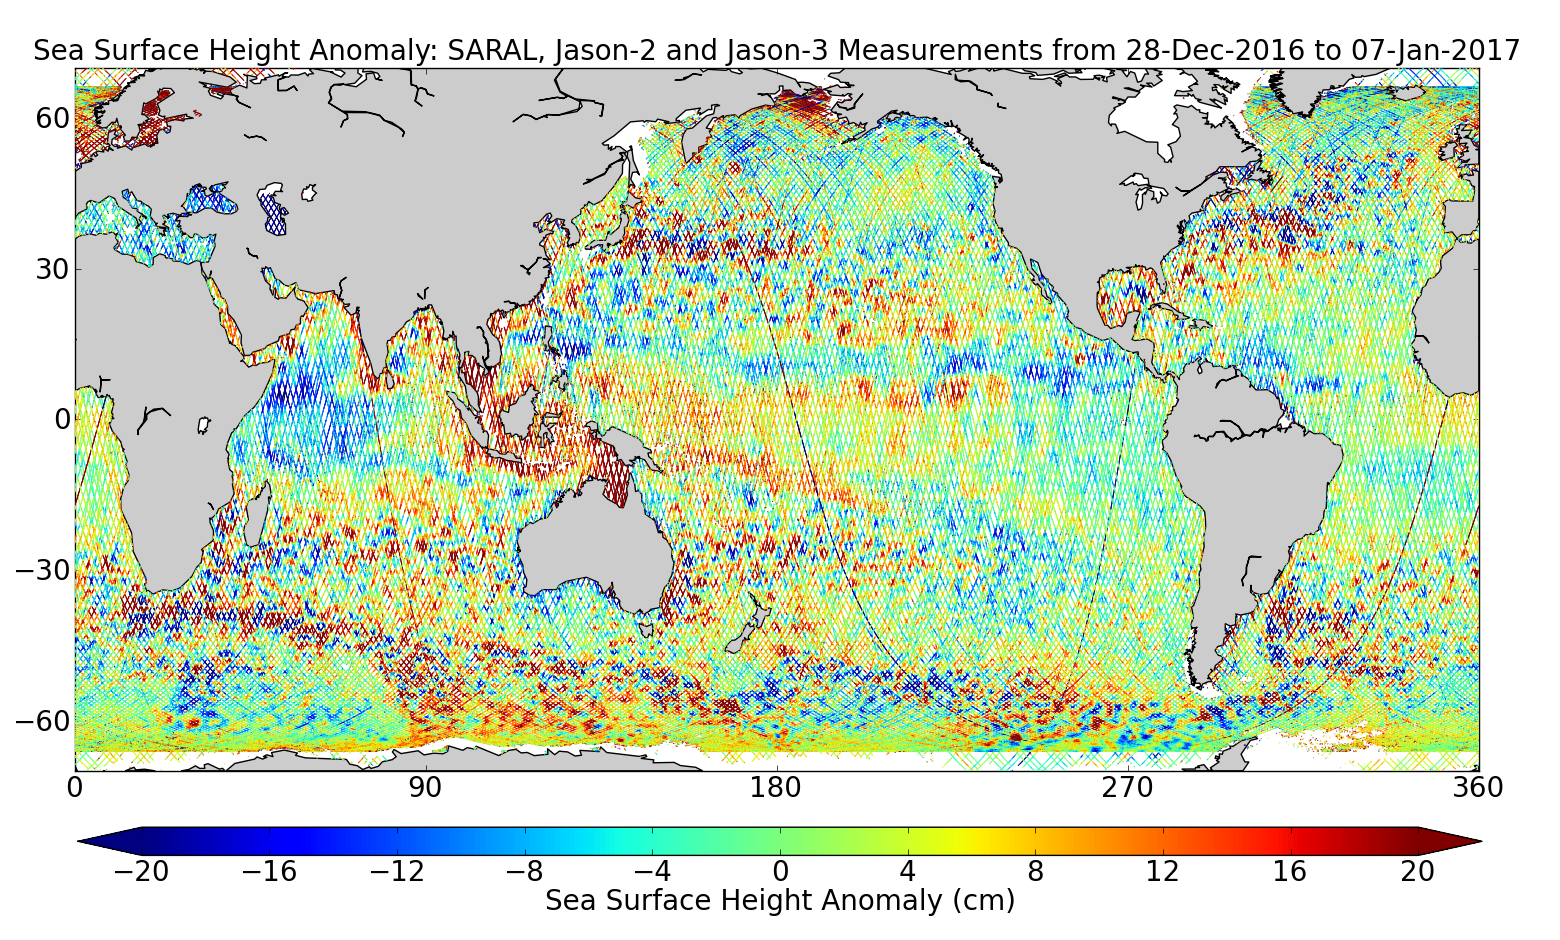 Sea Surface Height Anomaly: SARAL, Jason-2 and Jason-3 Measurements from 28-Dec-2016 to 07-Jan-2017